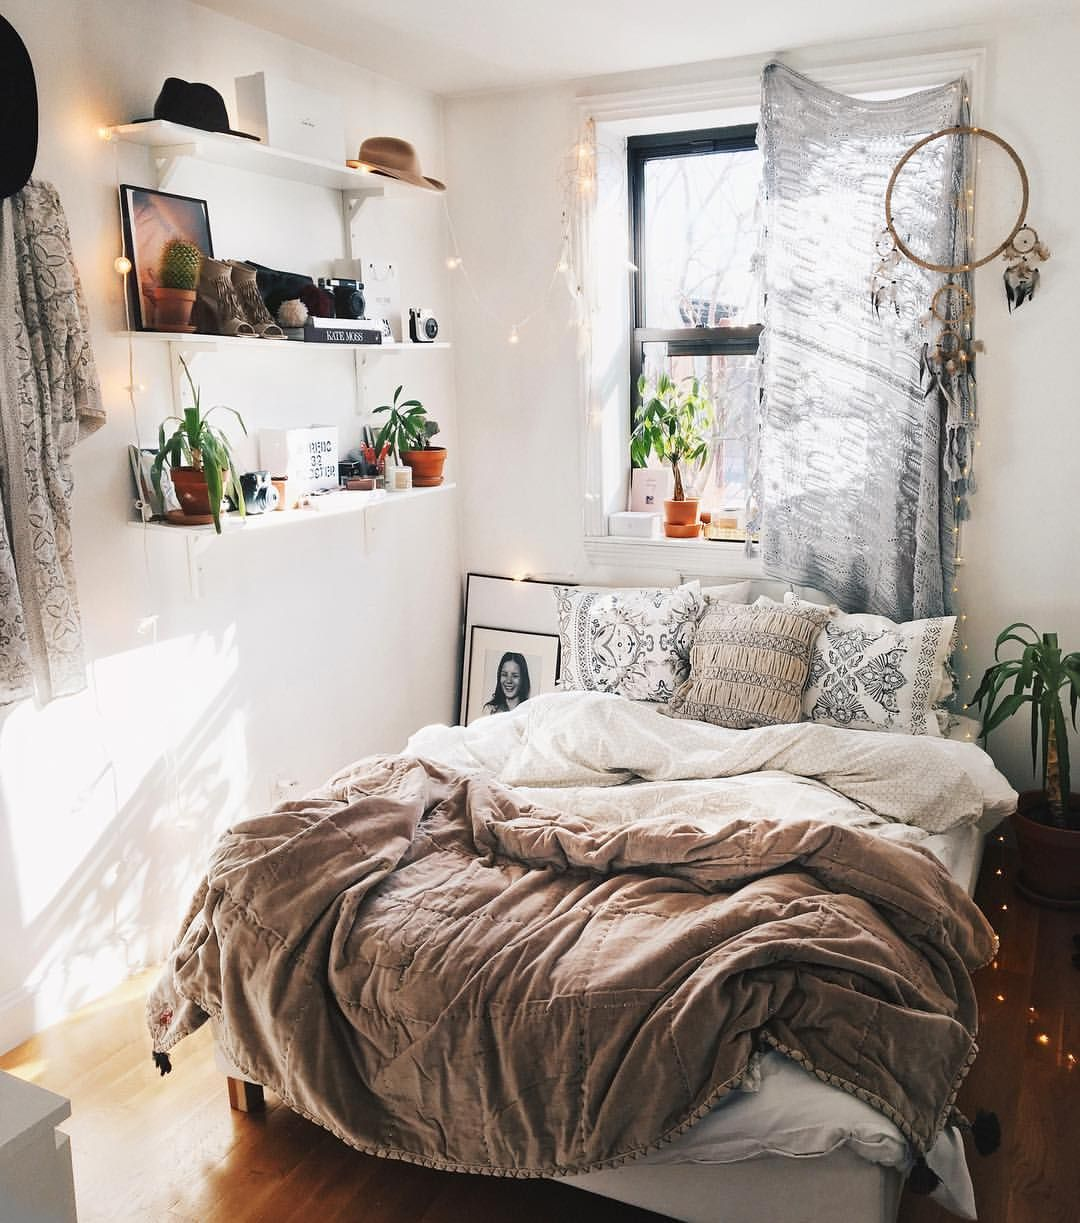 Pin by Lauren Kane on Bedroom | Cozy small bedrooms, Modern ...